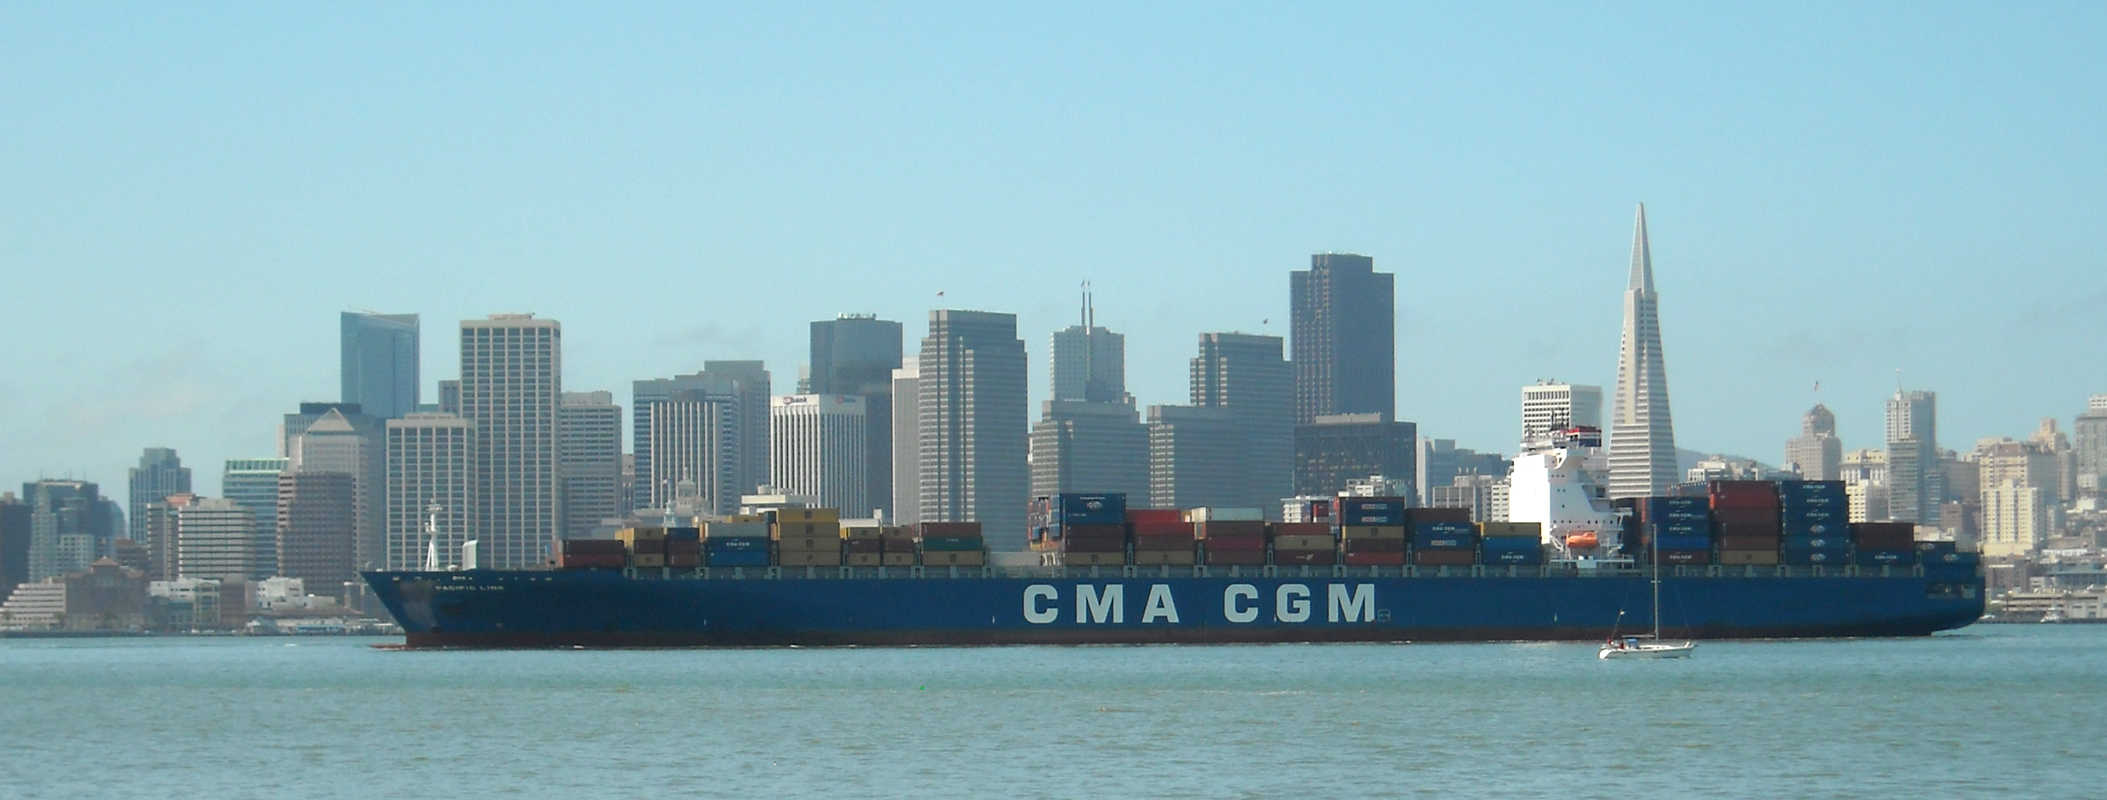 CMA CGM, CSCL and UASC form Ocean Three trade pact